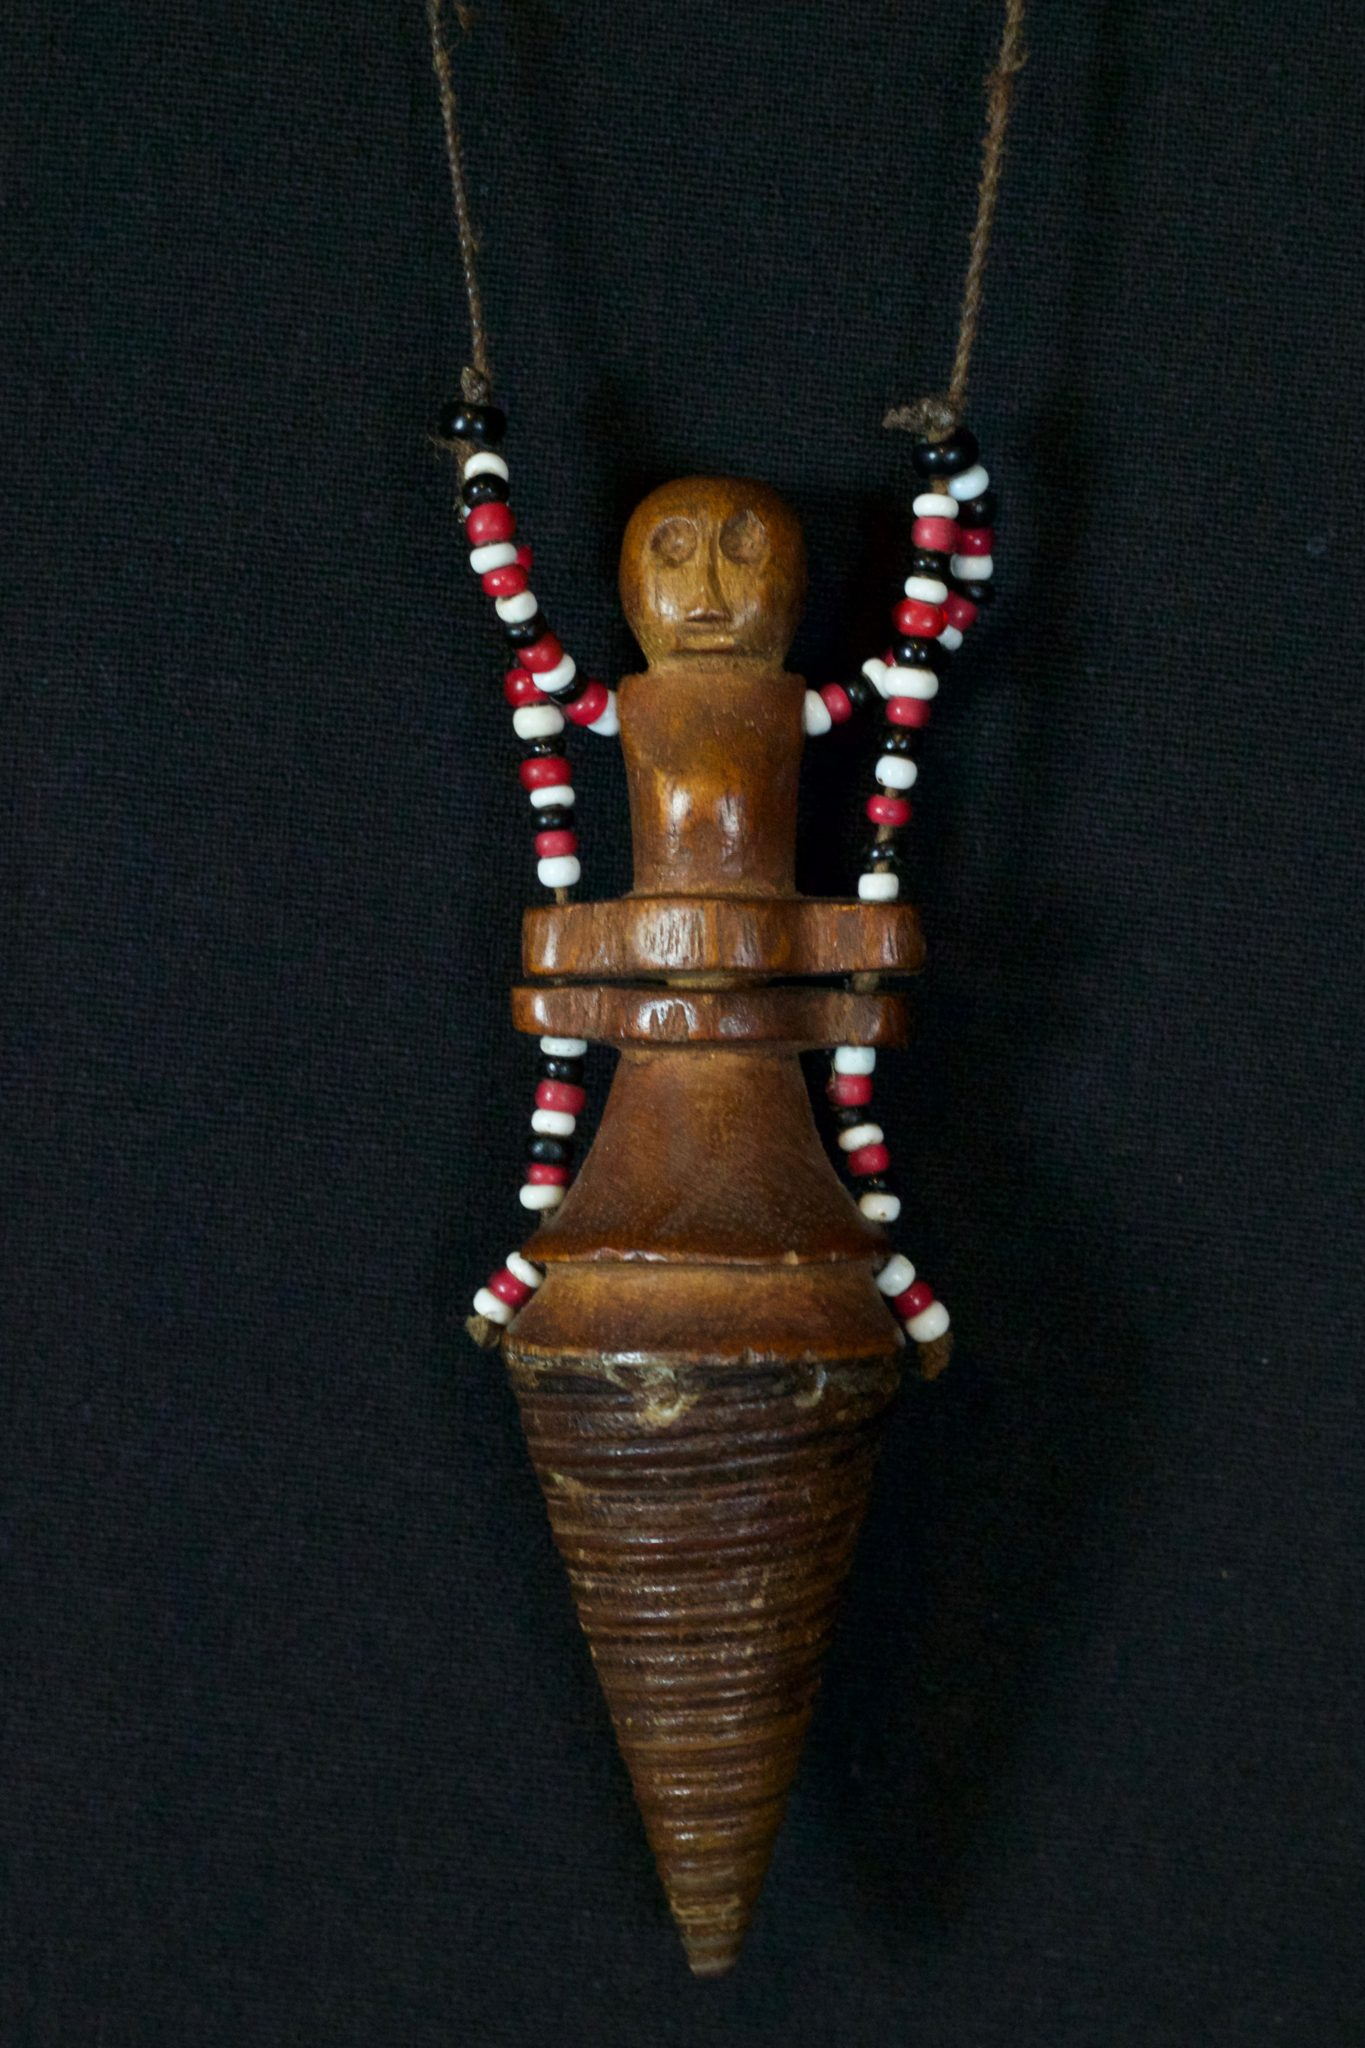 "Shaman Healing Medicine Container Necklace, Alor Island, Timor Islands, Lesser Sunda Islands, Indonesia, Mid 20th c, Wood, beads, shell (Telescopium telescopium, or Horn snail spire). Used to hold medicine for healing rituals, 4 ½"" x 1 ½"" x 1 ¼"", $390."